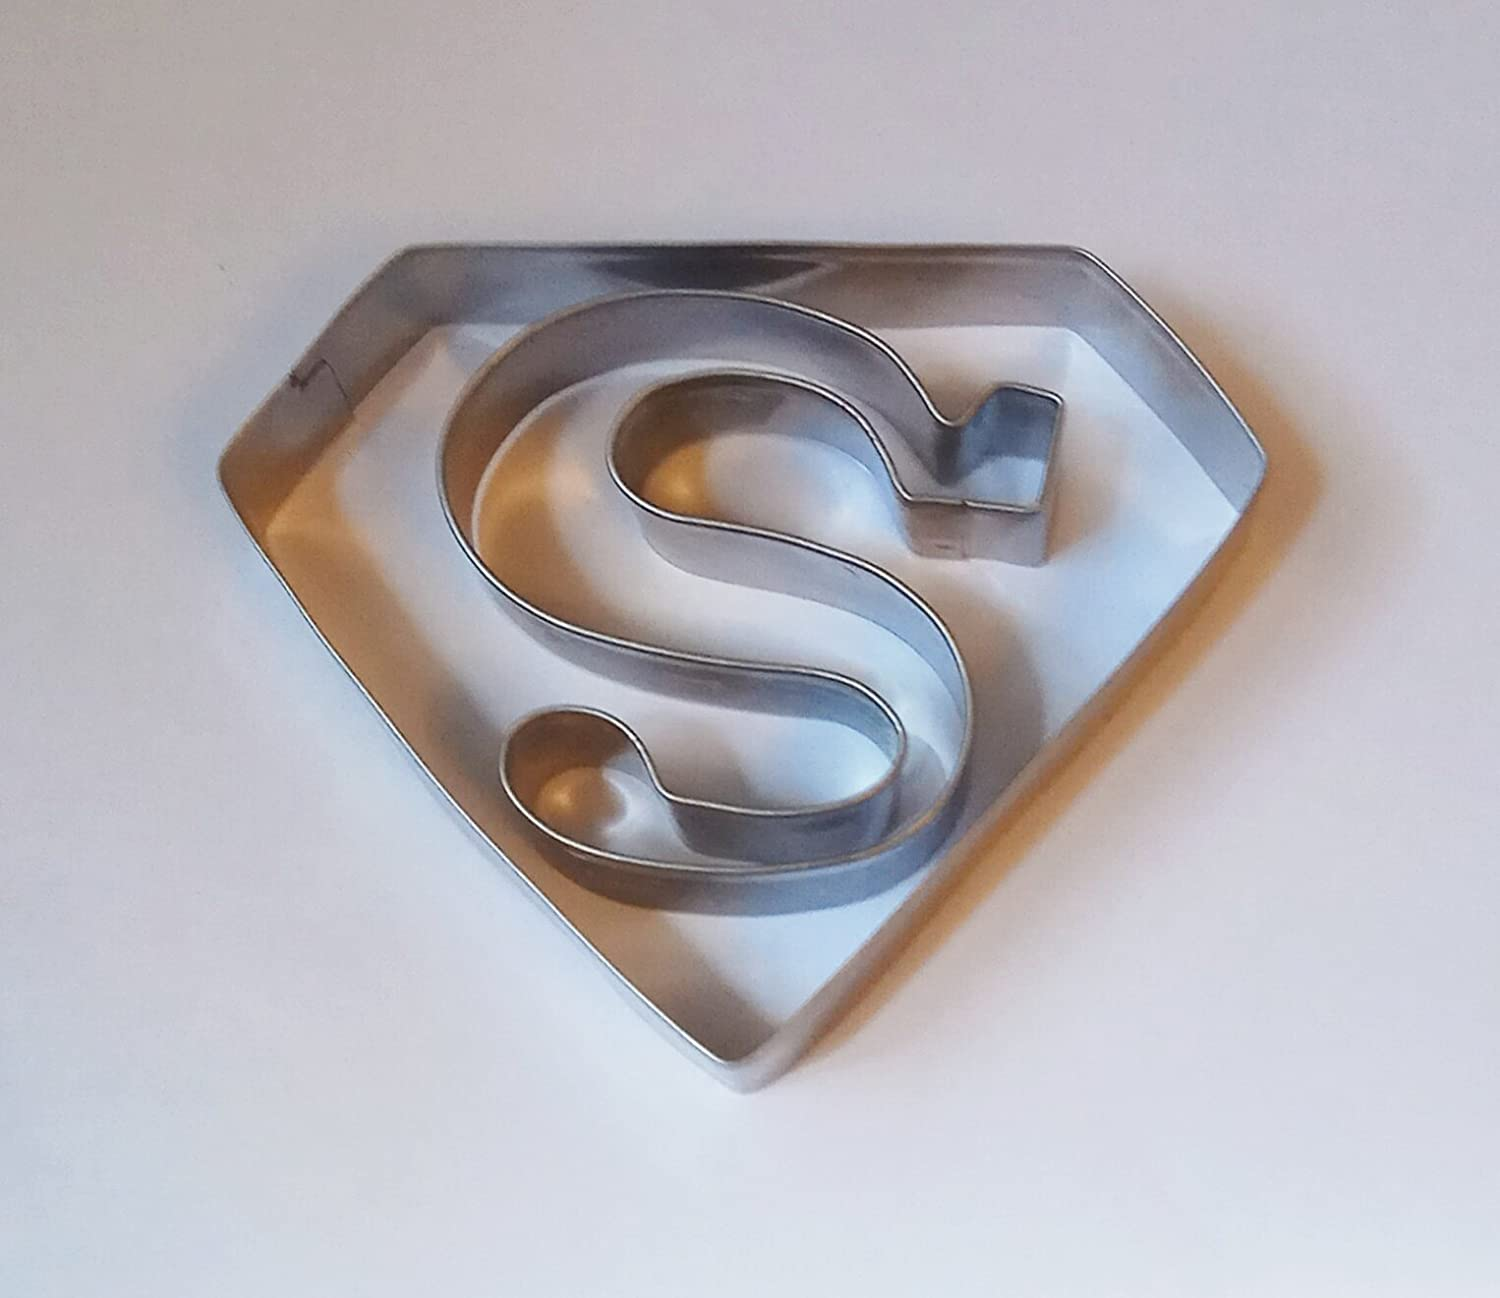 Lawman Superman Cookie Cutter Fondant Pastry Candy Baking Biscuit Metal Mold Lawmanstore LMSM2